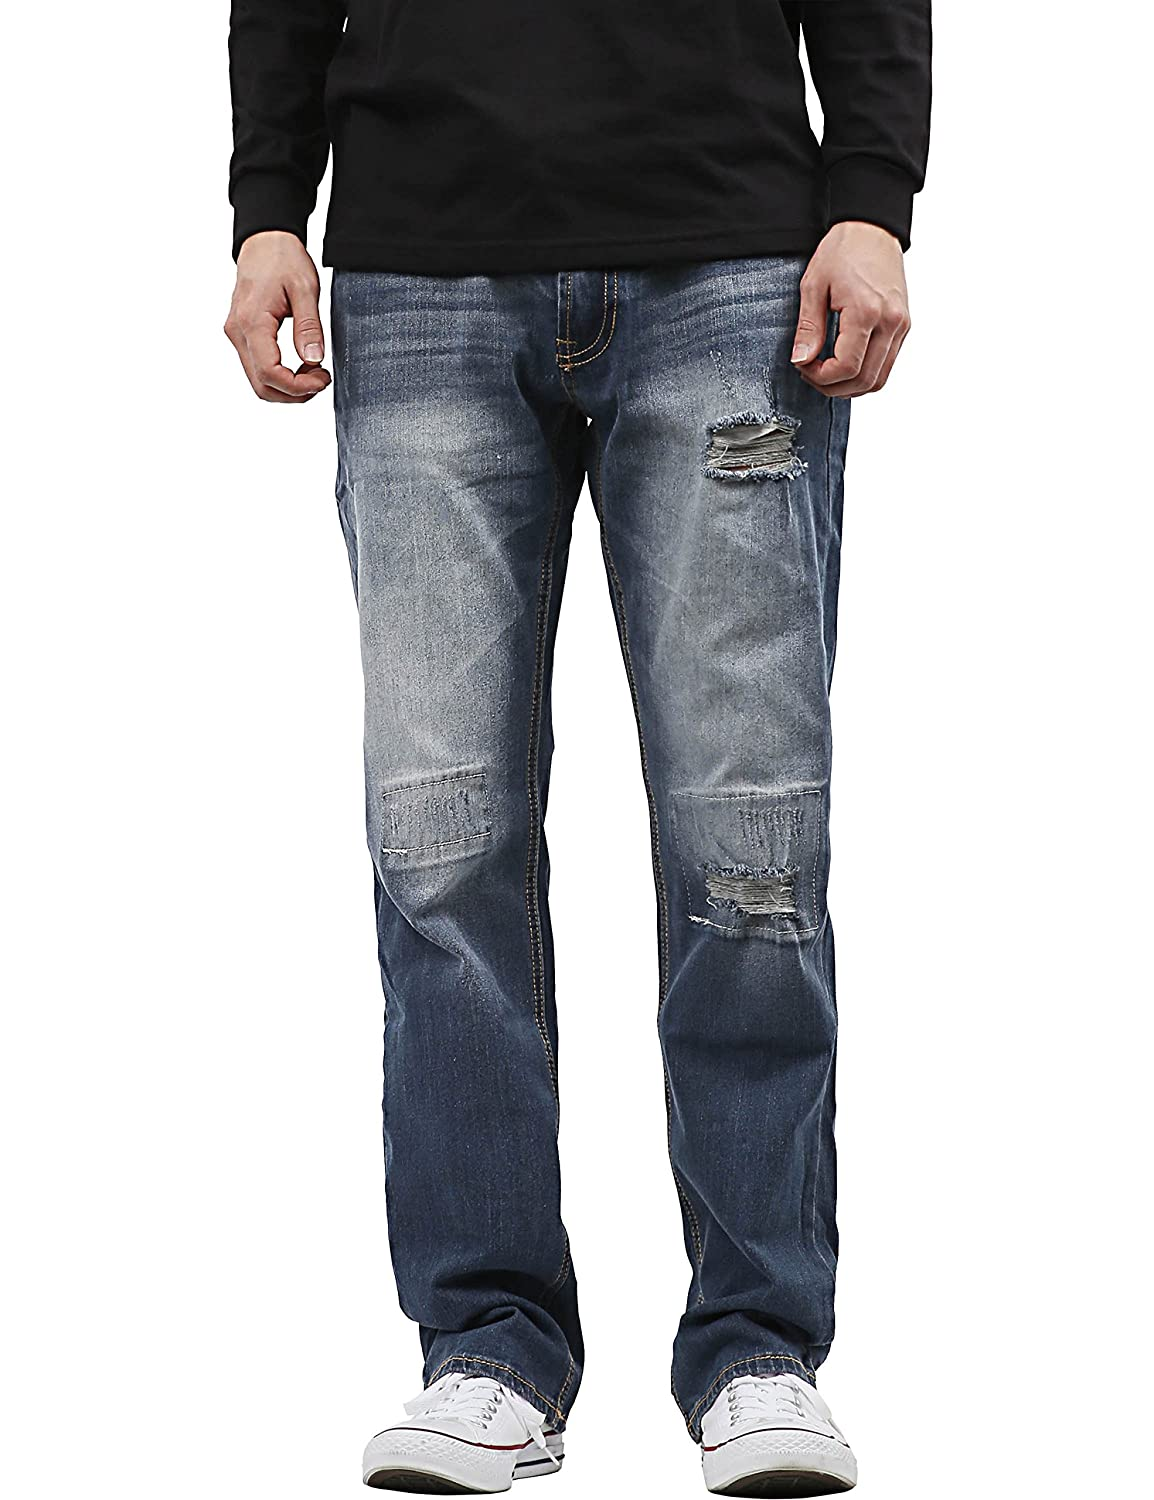 42x32//1PI0011/_007.5yrdestroyed Hat and Beyond Mens Slim Straight Stretch Jeans